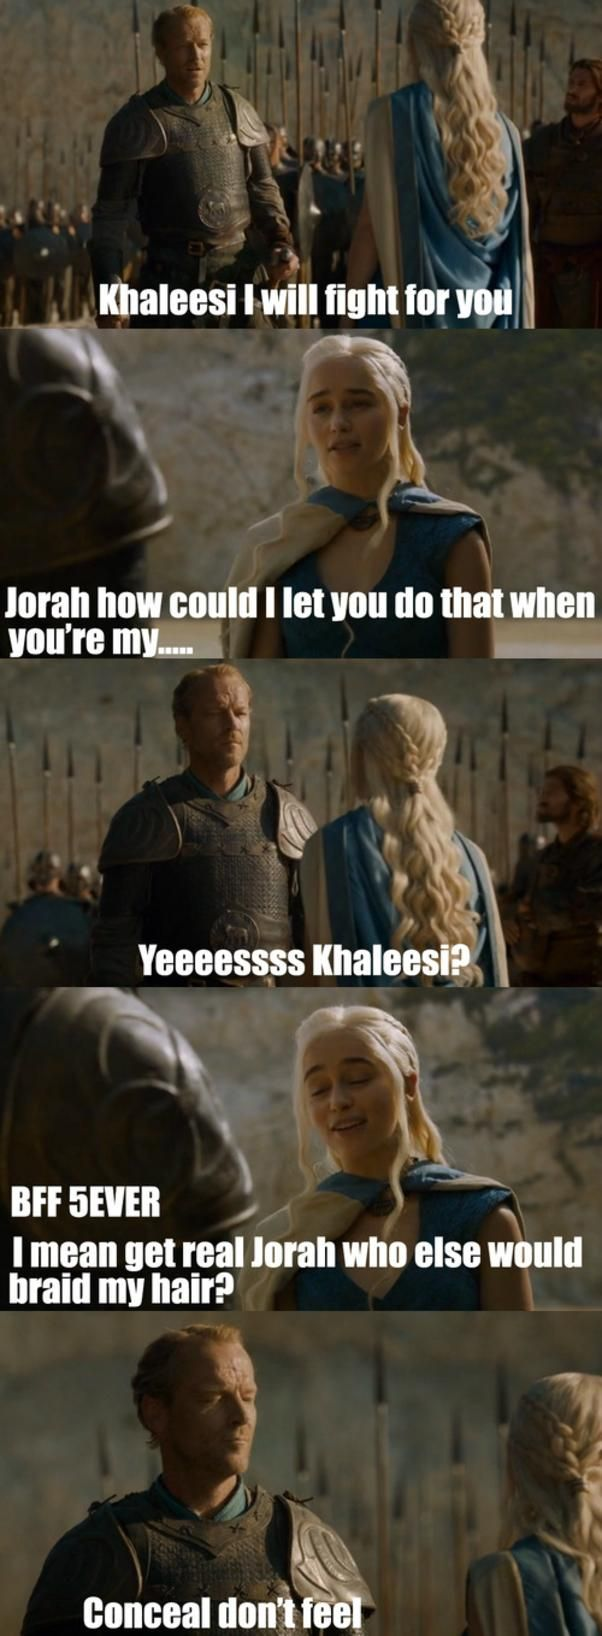 25 best ideas about jorah game of thrones on pinterest game of top 10 game download